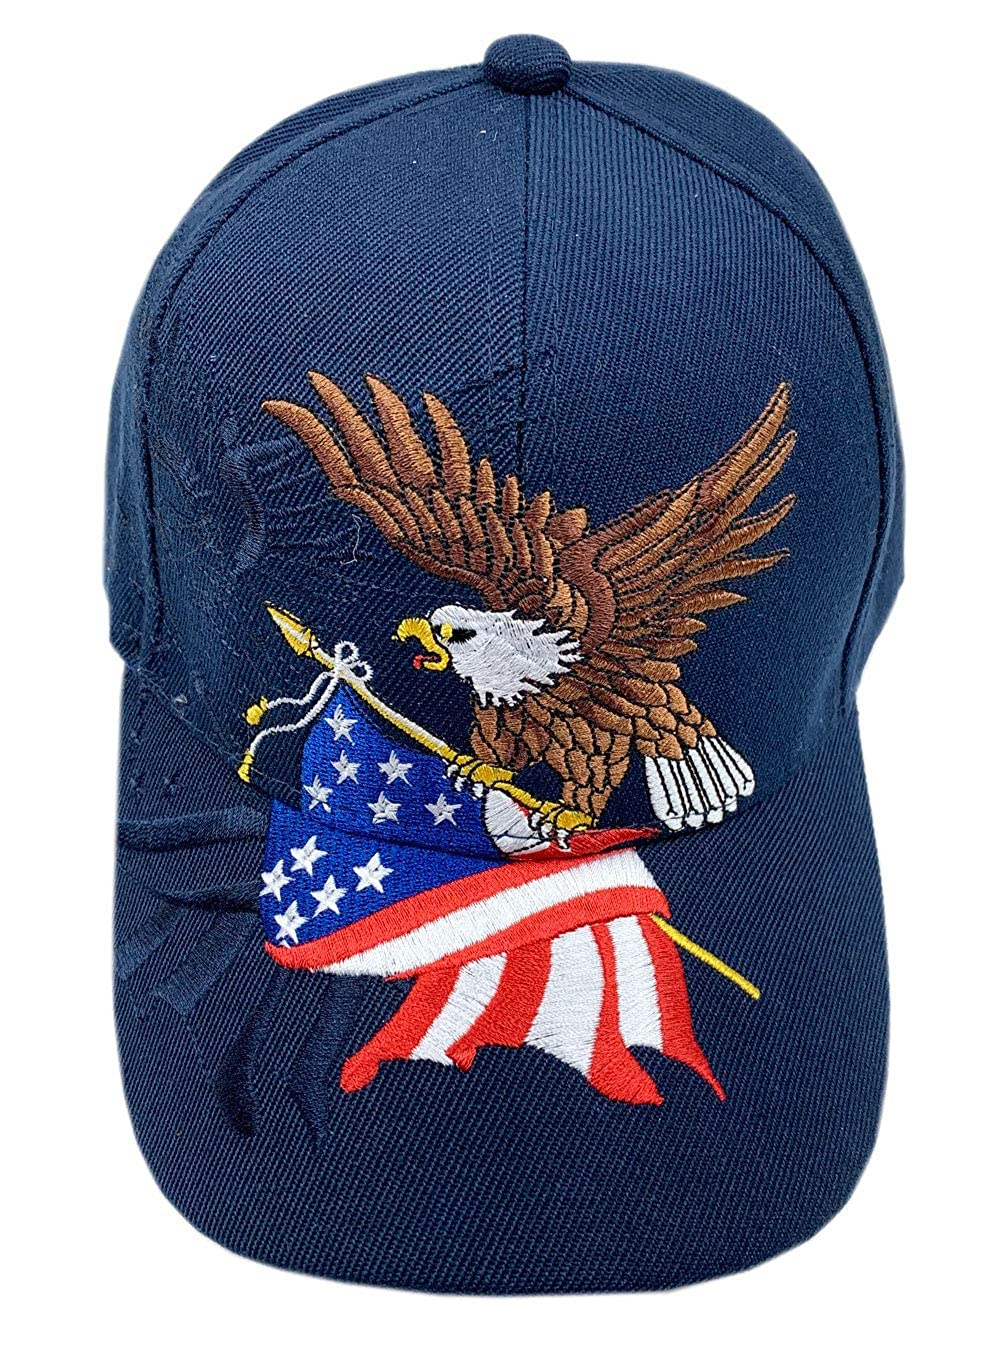 aesthetinc Patriotic USA American Flag Print Baseball Cap Embroidered